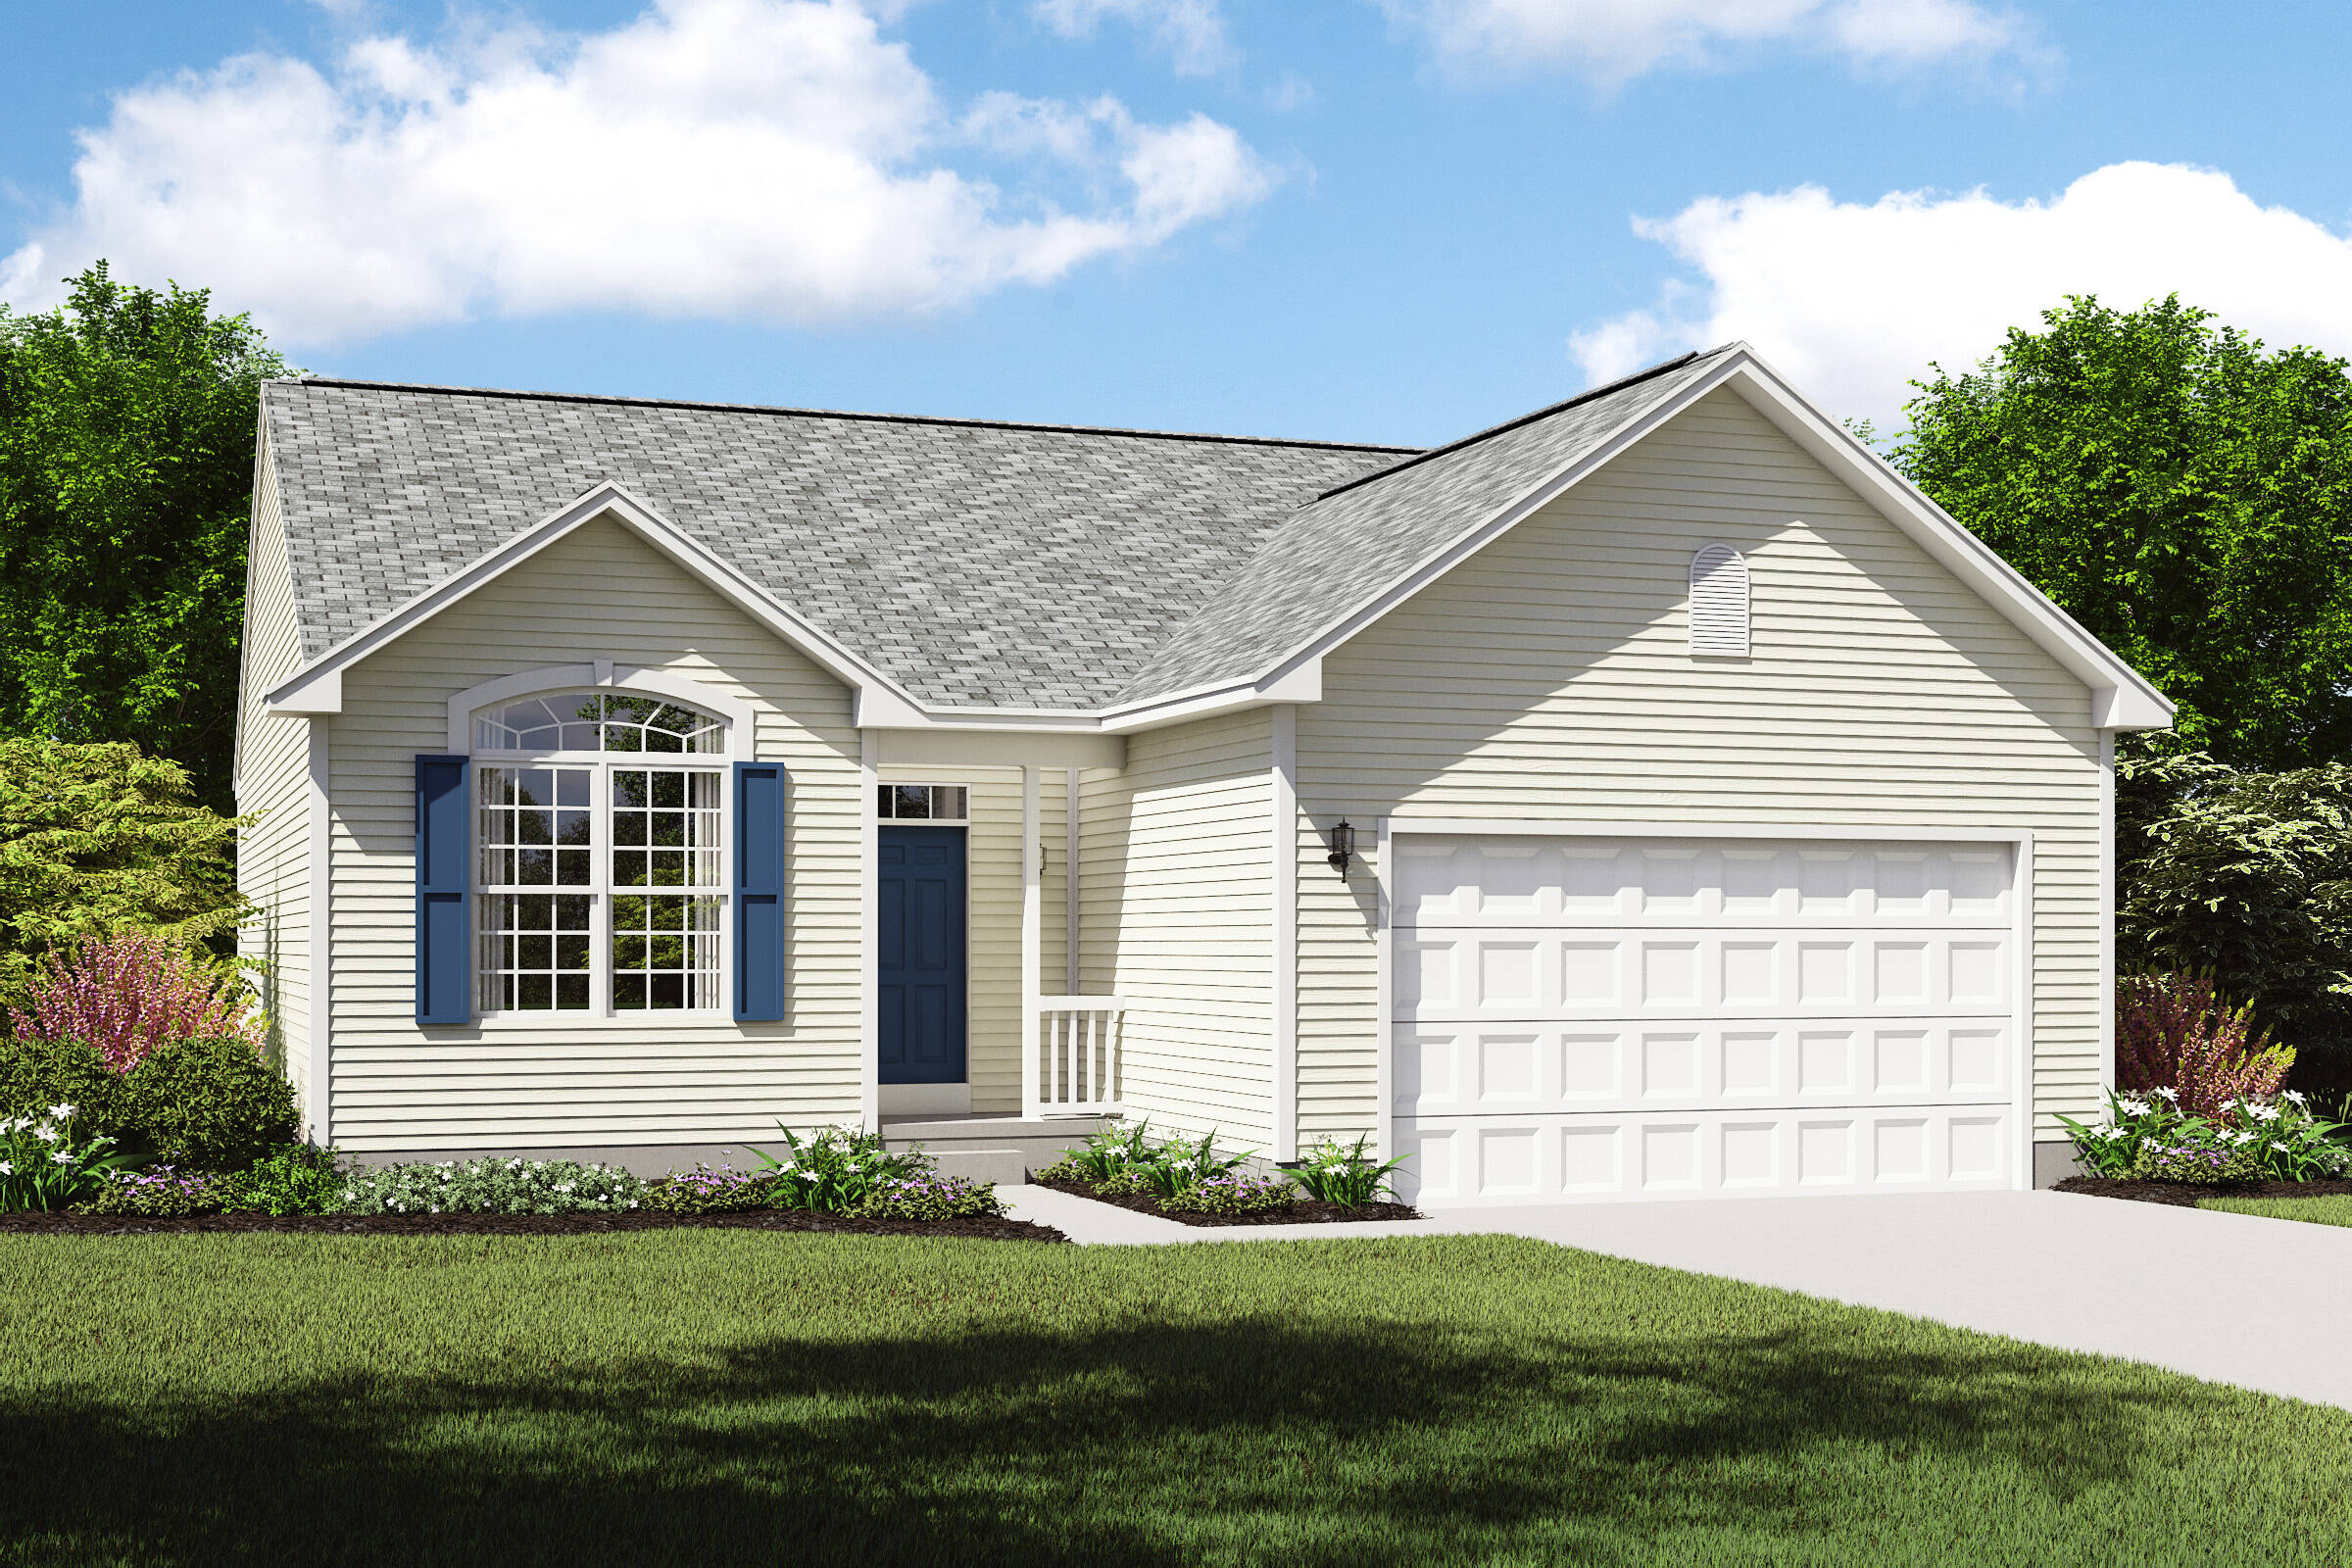 pinacle c ranch home designs cleveland ohio